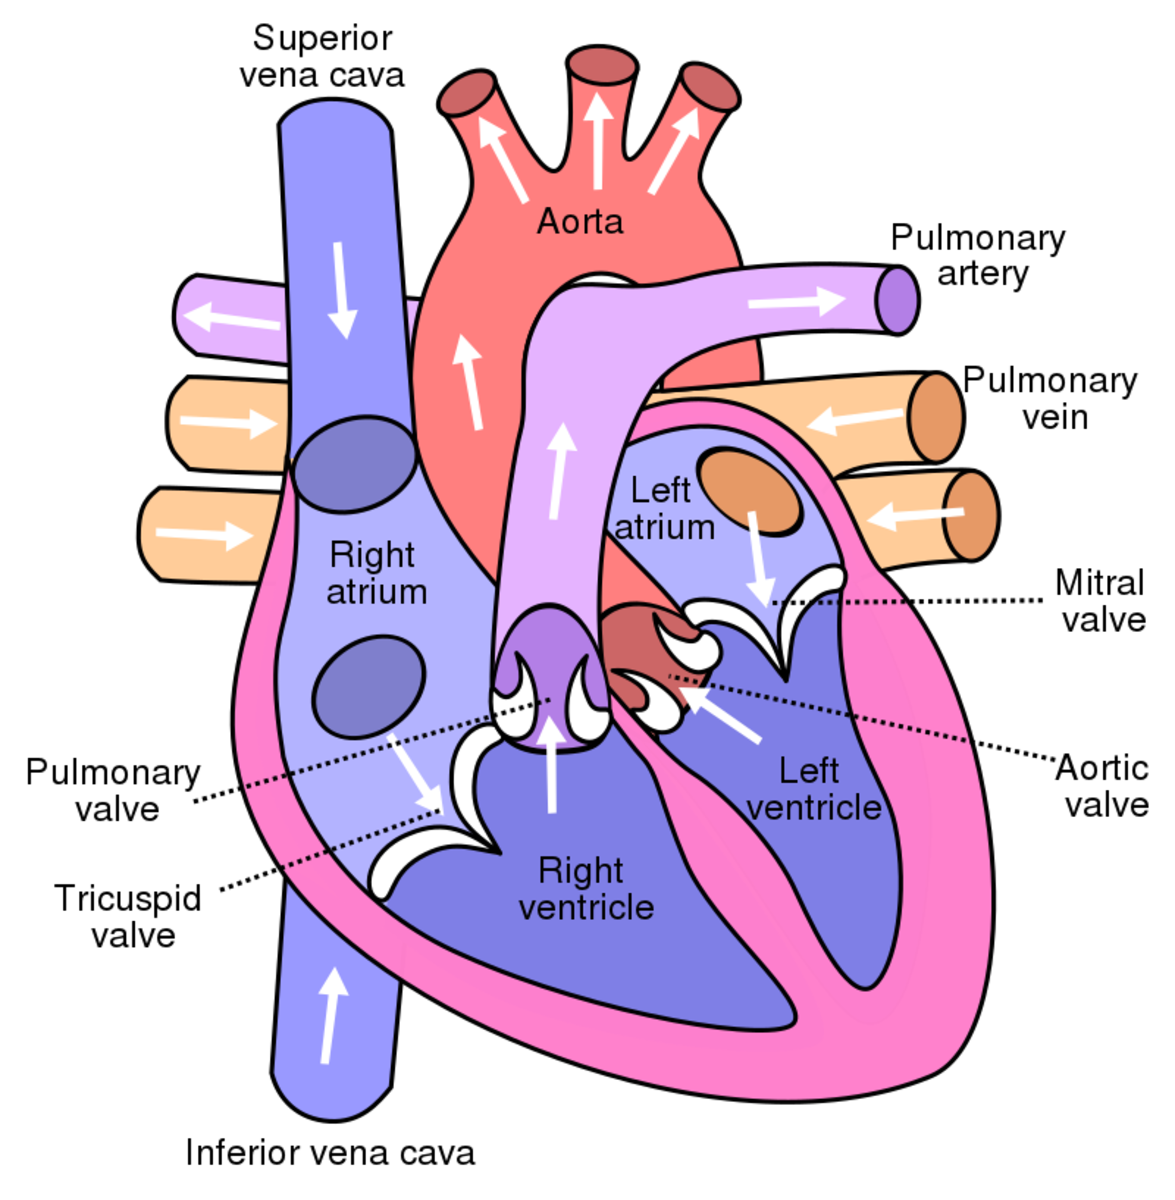 Parts of the human heart of the circulatory system